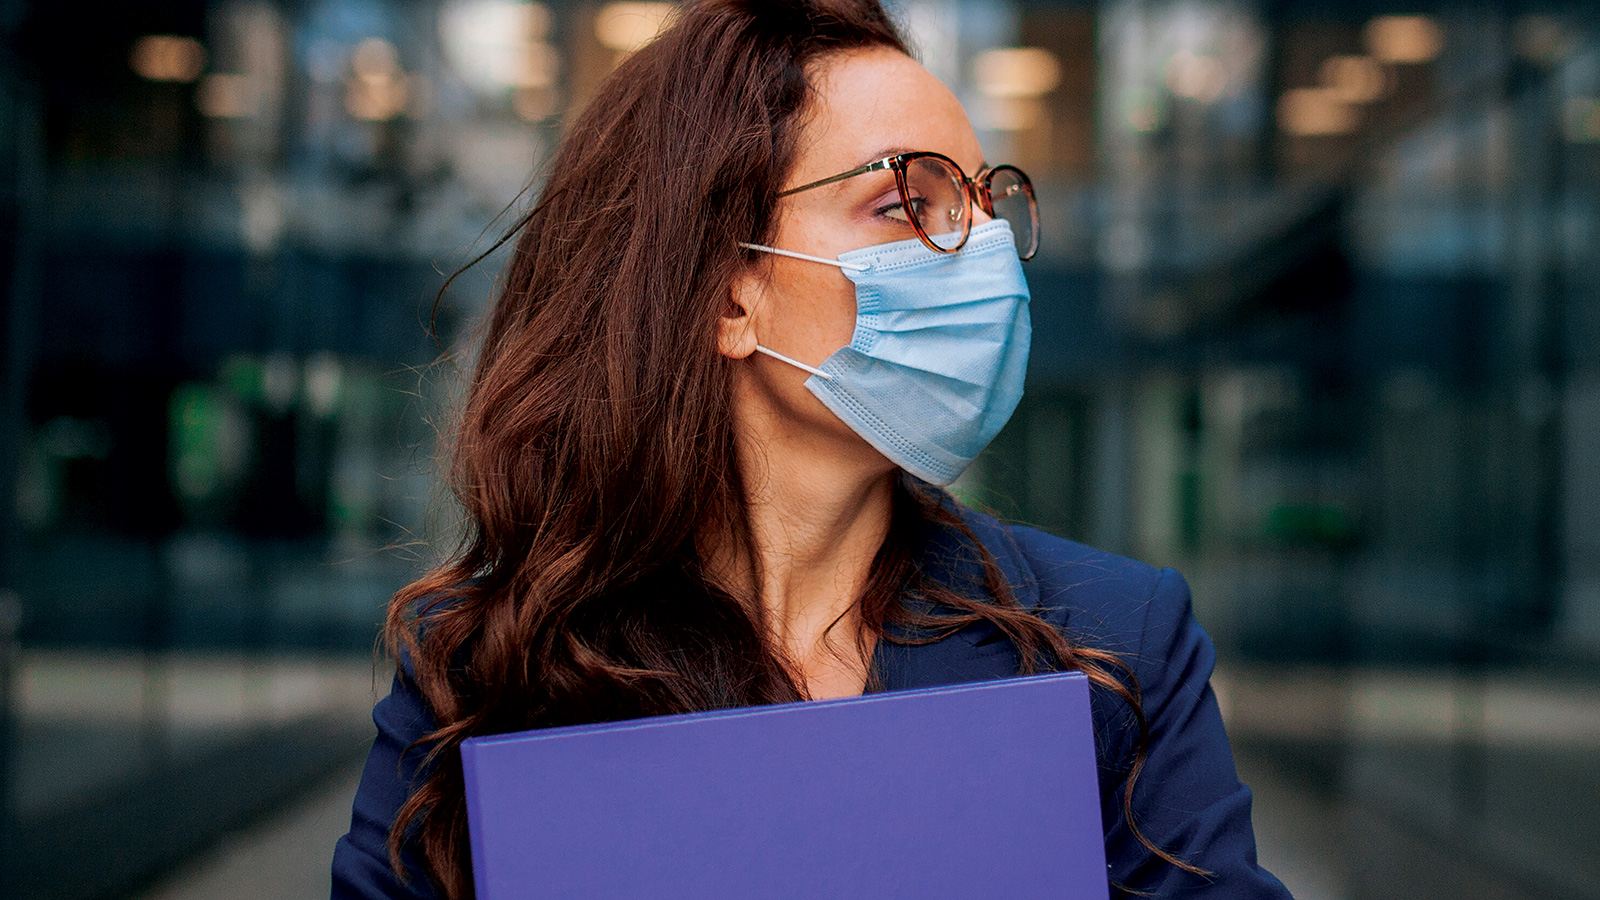 Unlike the popular perception, lawyers have always been willing to help others. The pandemic is just the latest example.